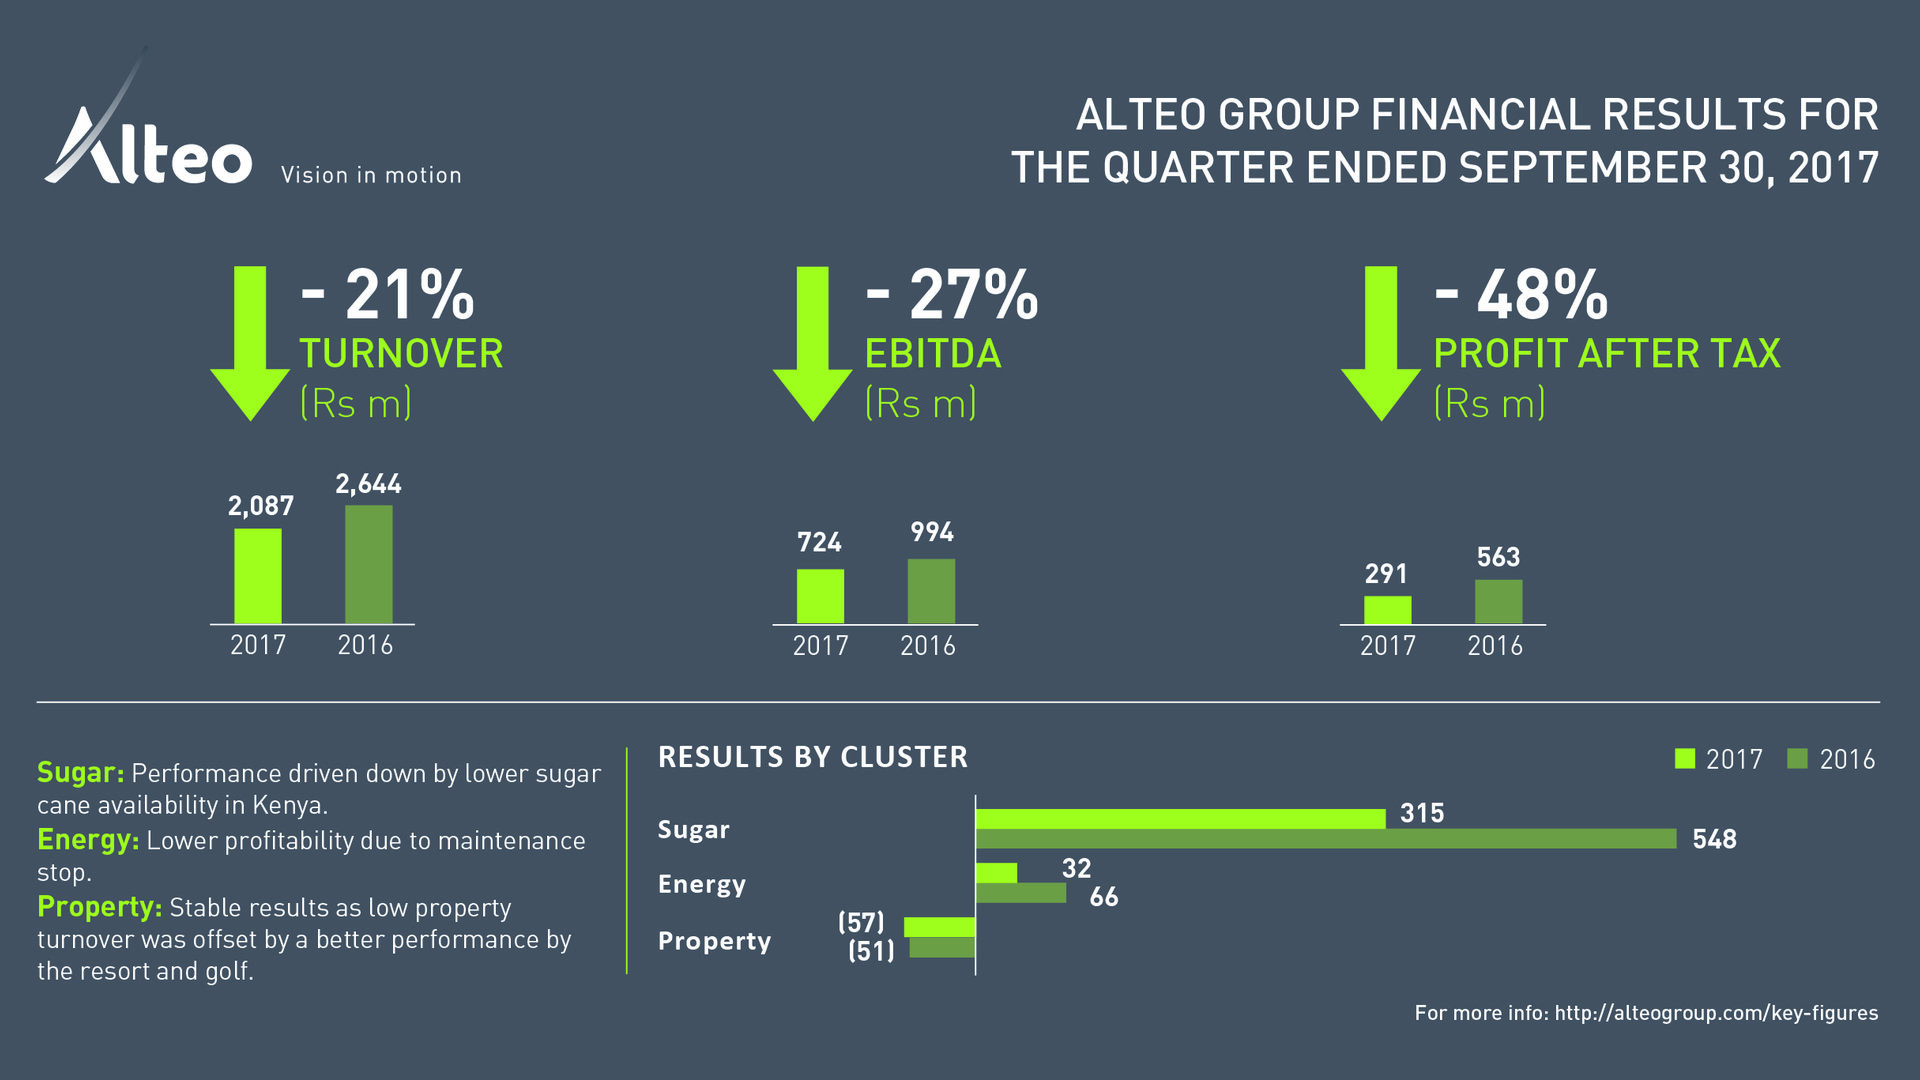 Alteo Group published its financial results for the quarter ended 30 September 2017